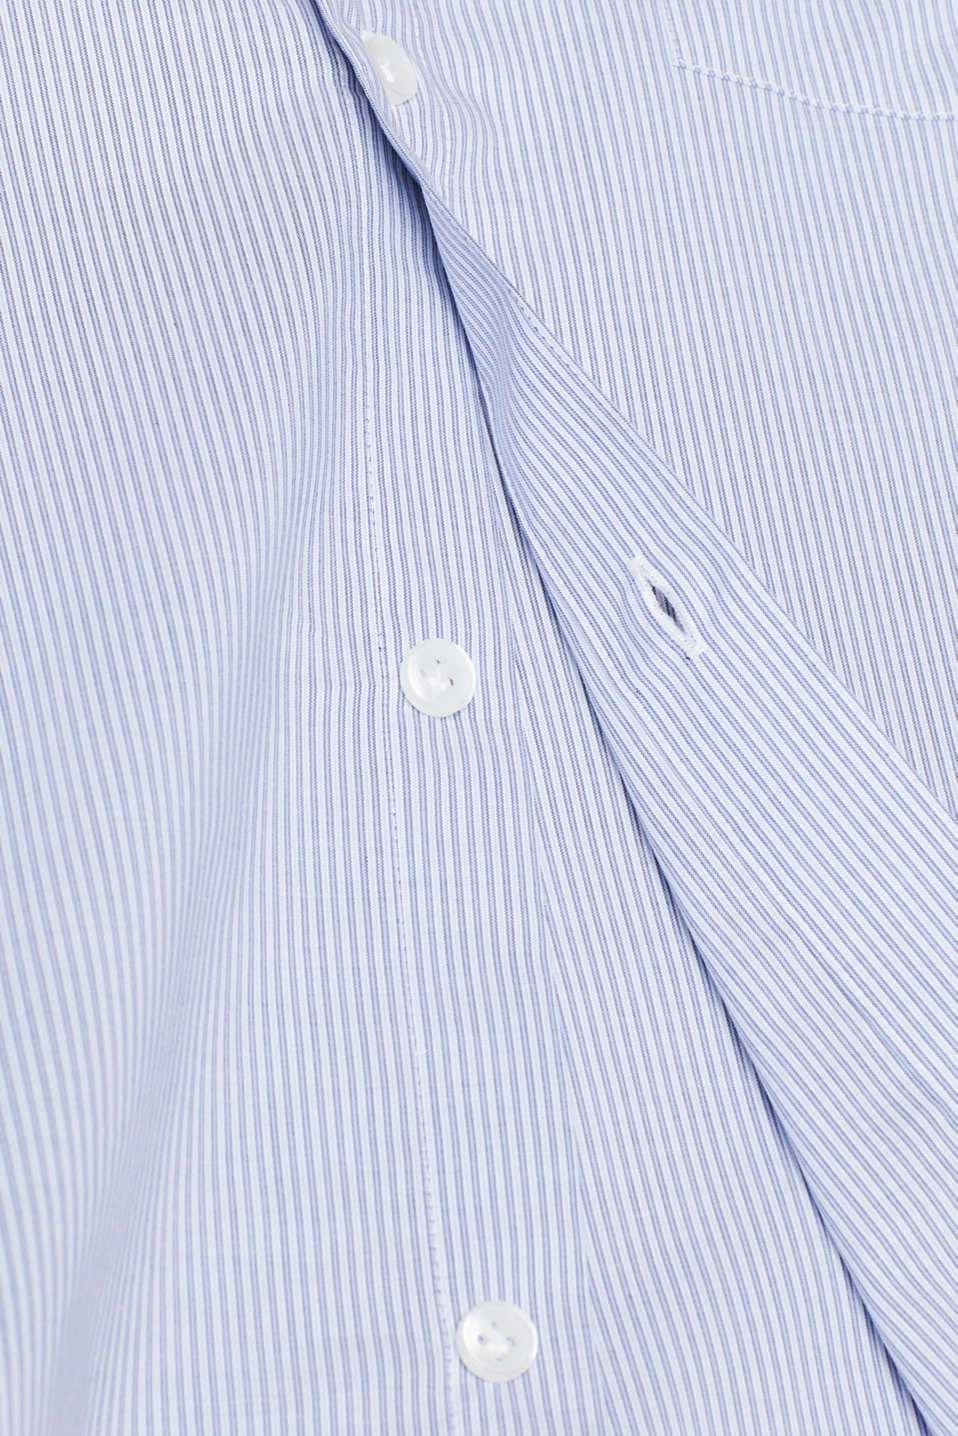 Shirts woven Regular fit, NAVY, detail image number 4